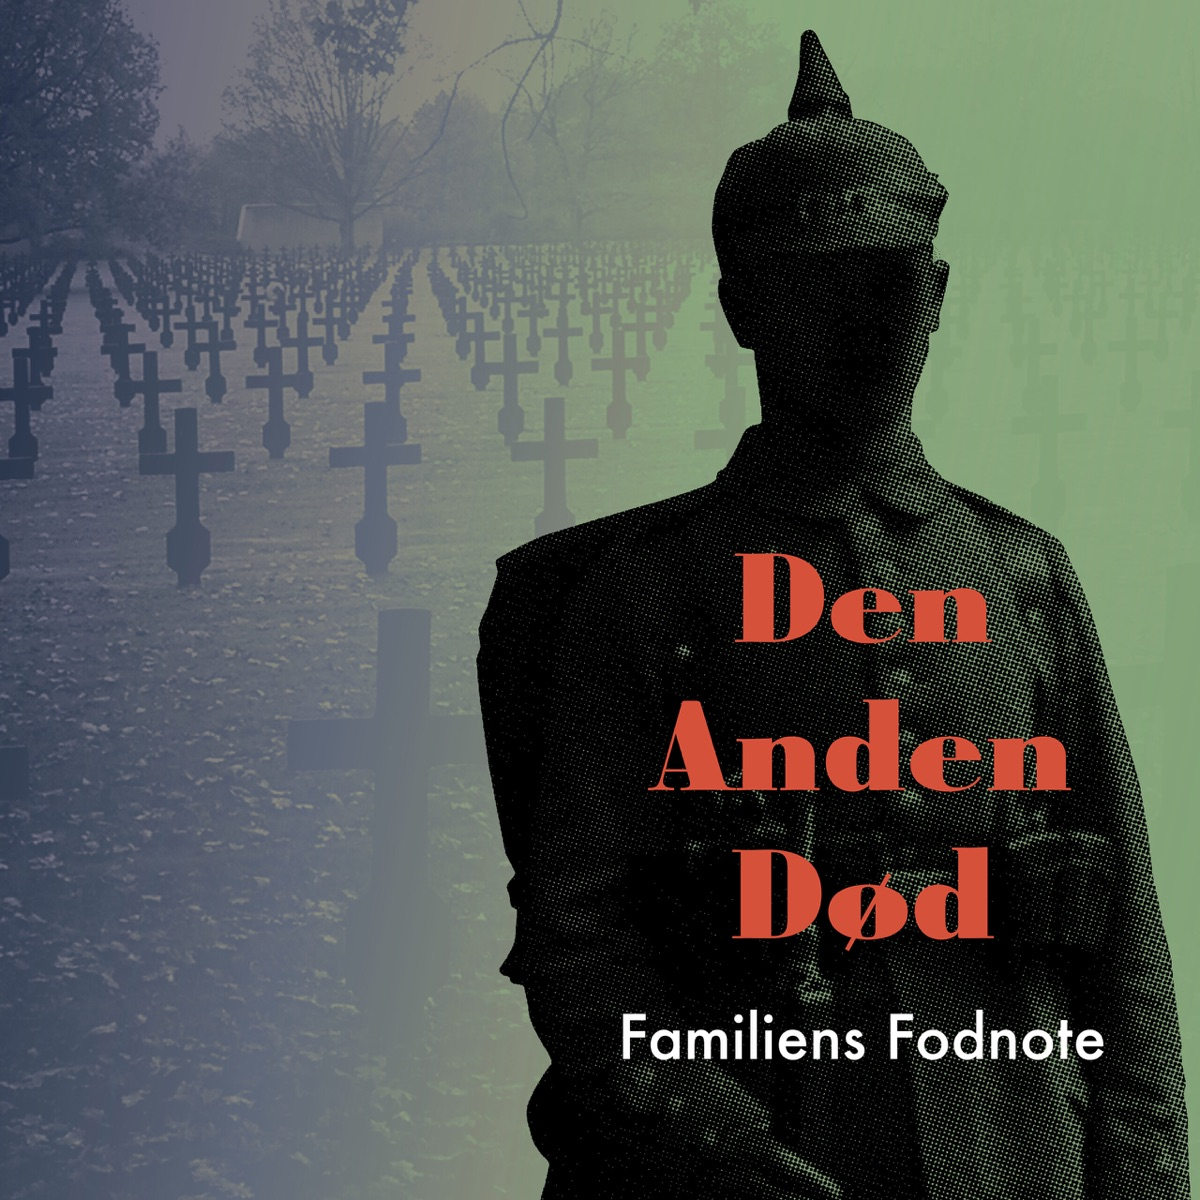 Familiens Fodnote